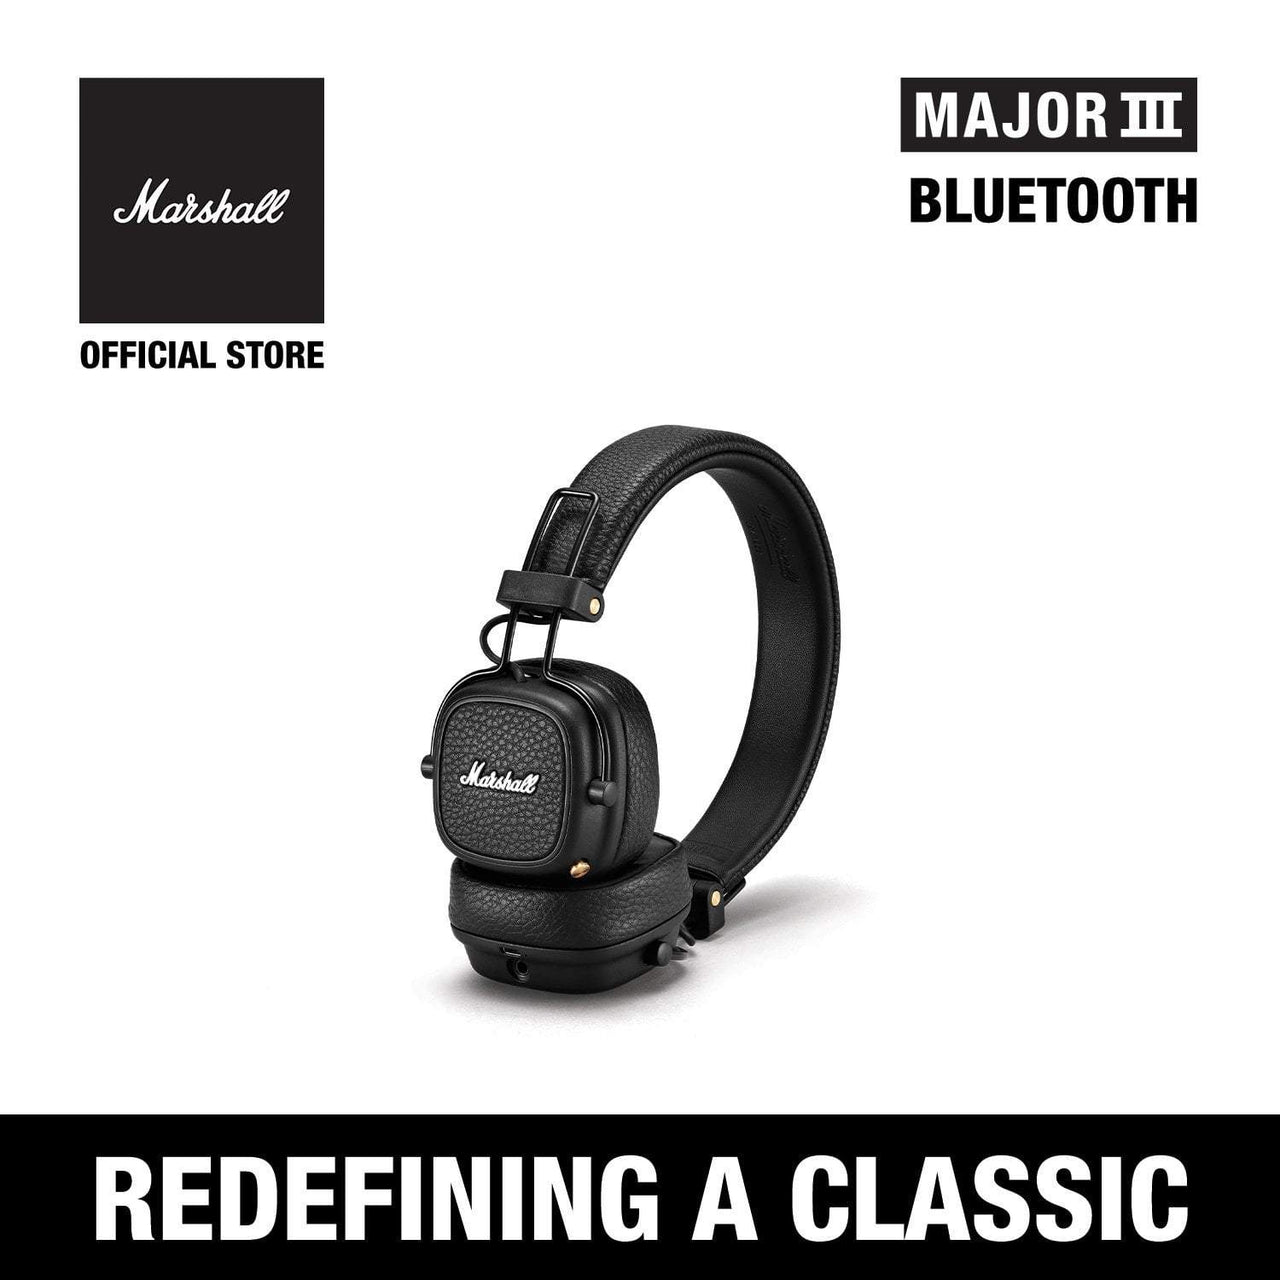 Major III Bluetooth Black [Exclusive Partner], Headphones, Marshall Headphones, ASH Asia